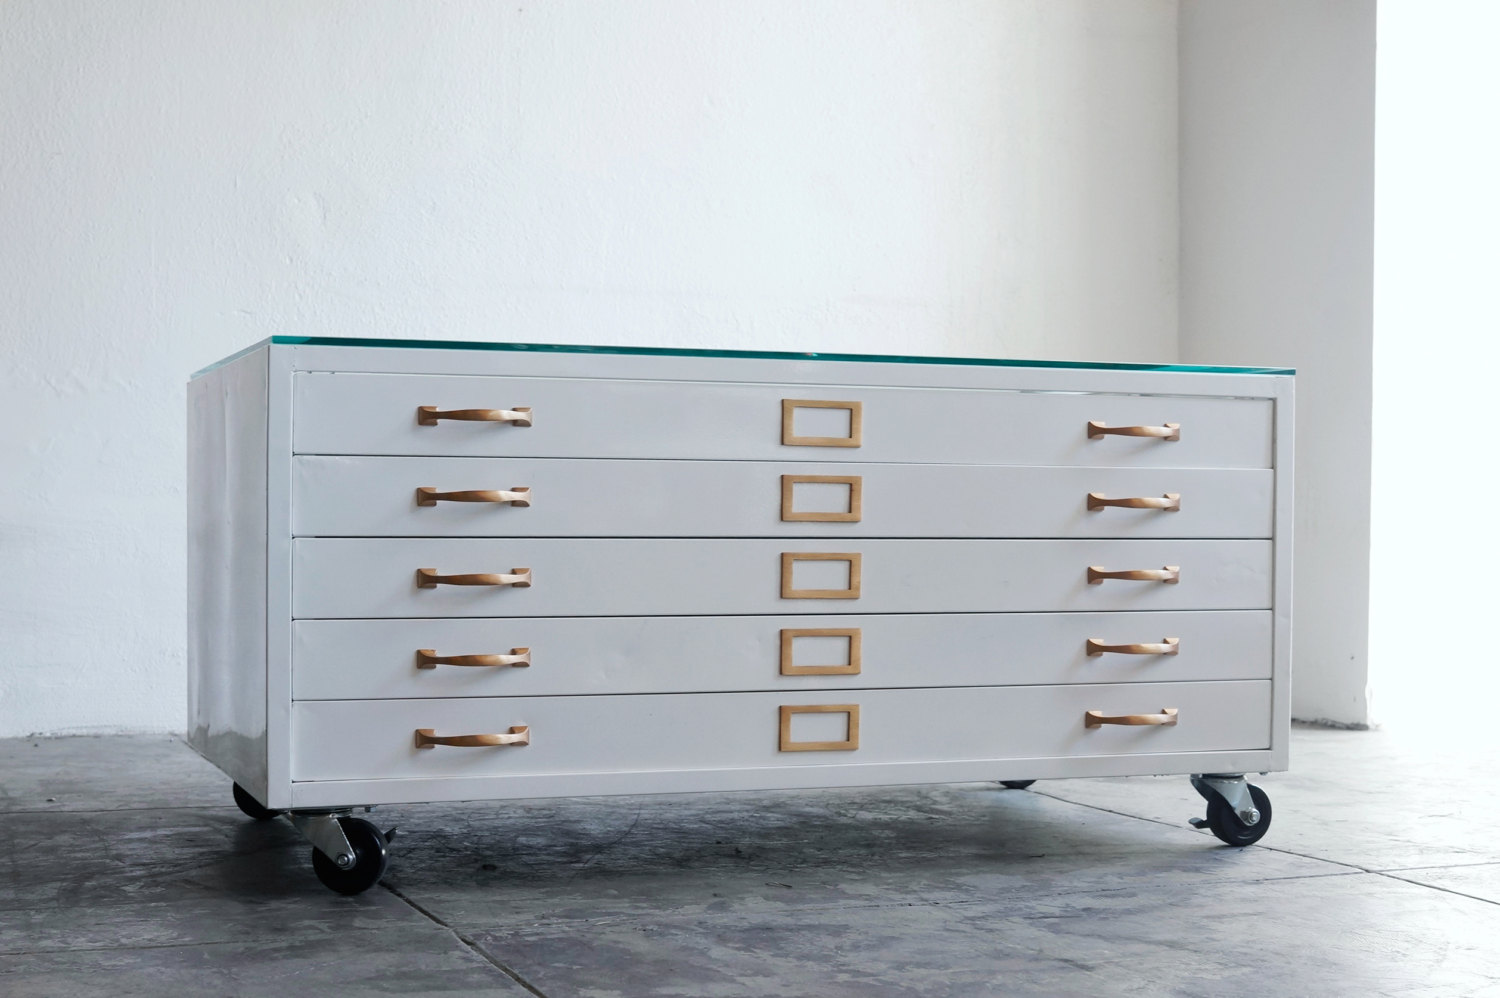 Vintage White Flat File Cabinet From Ikea Design With Golden Accent With  Wheels On Concrete Floor